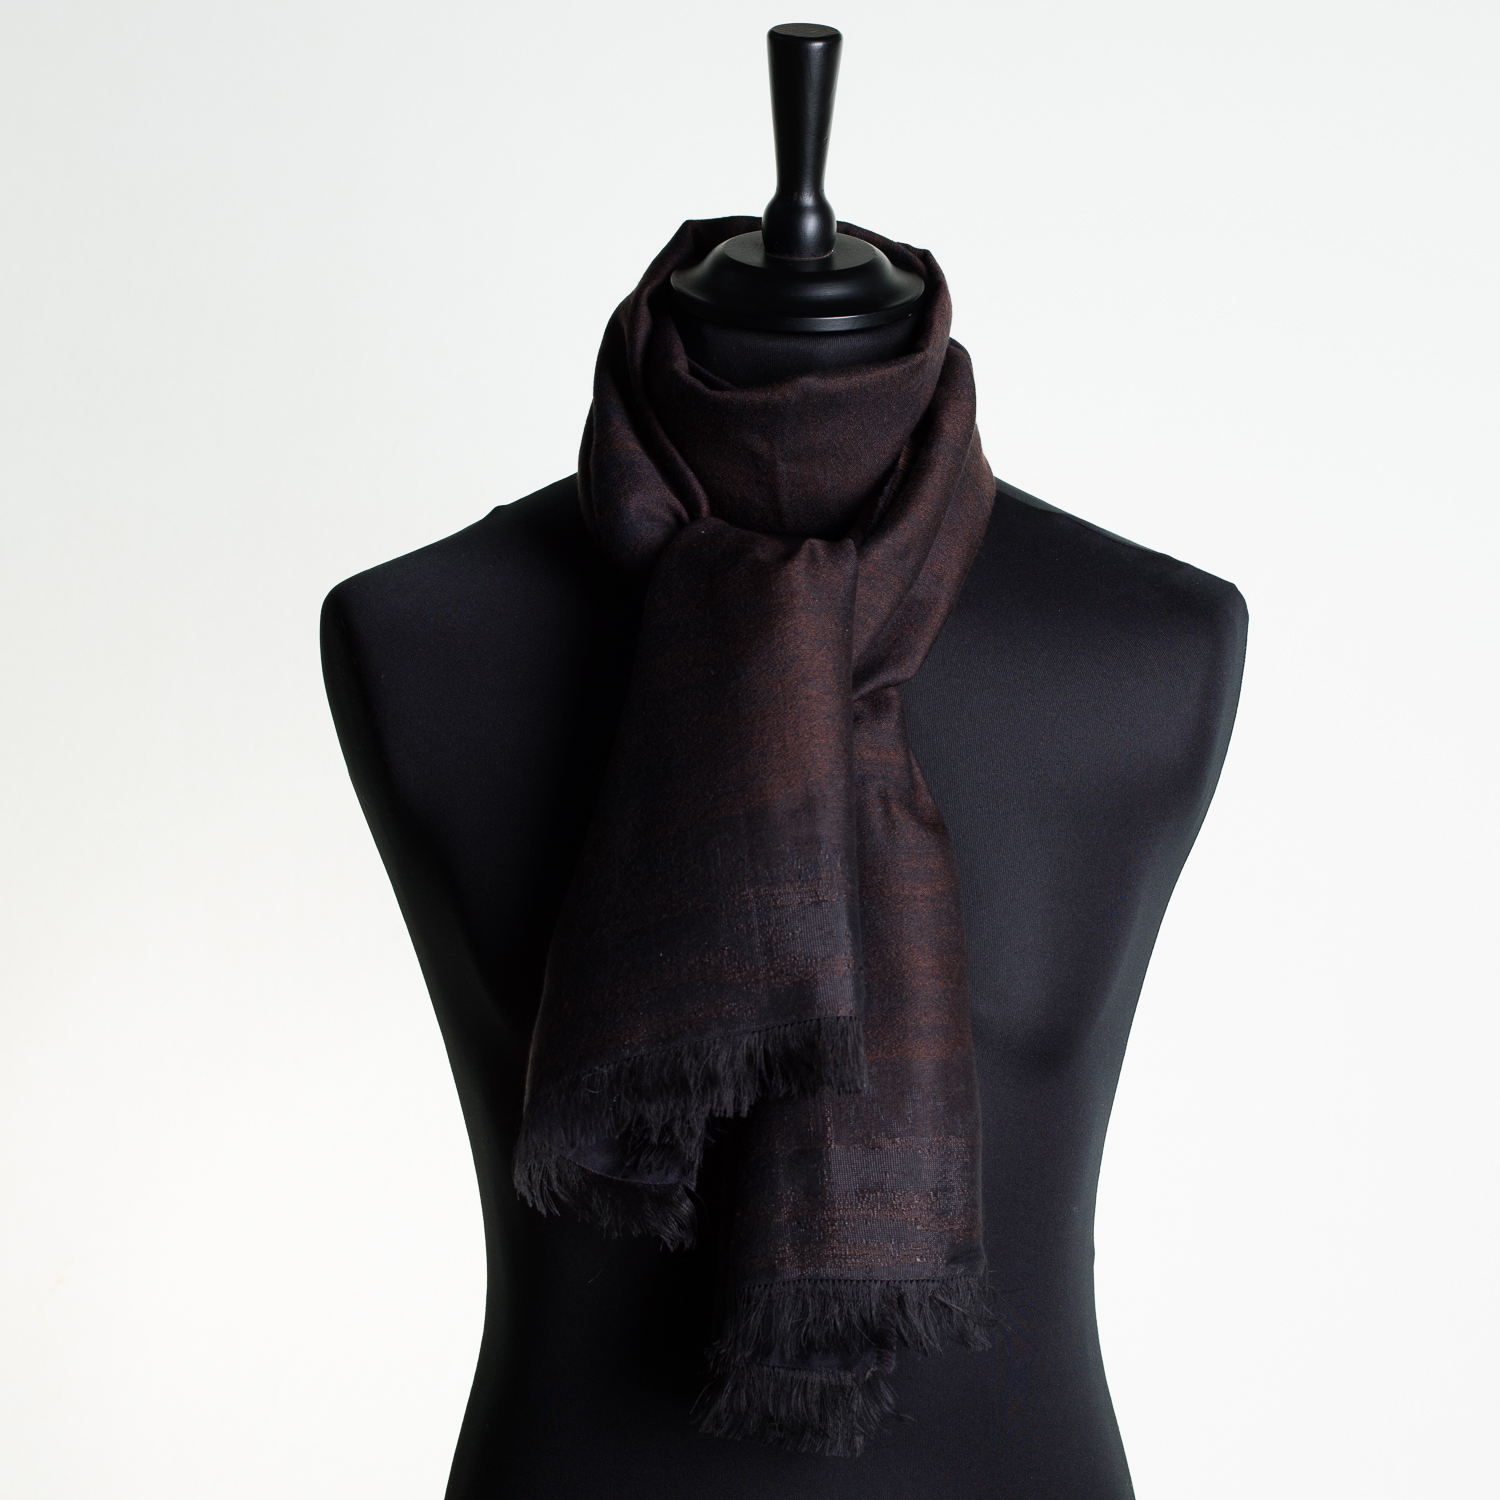 HOT CITY 'CONKER' LONG SILK AND CASHMERE SCARF